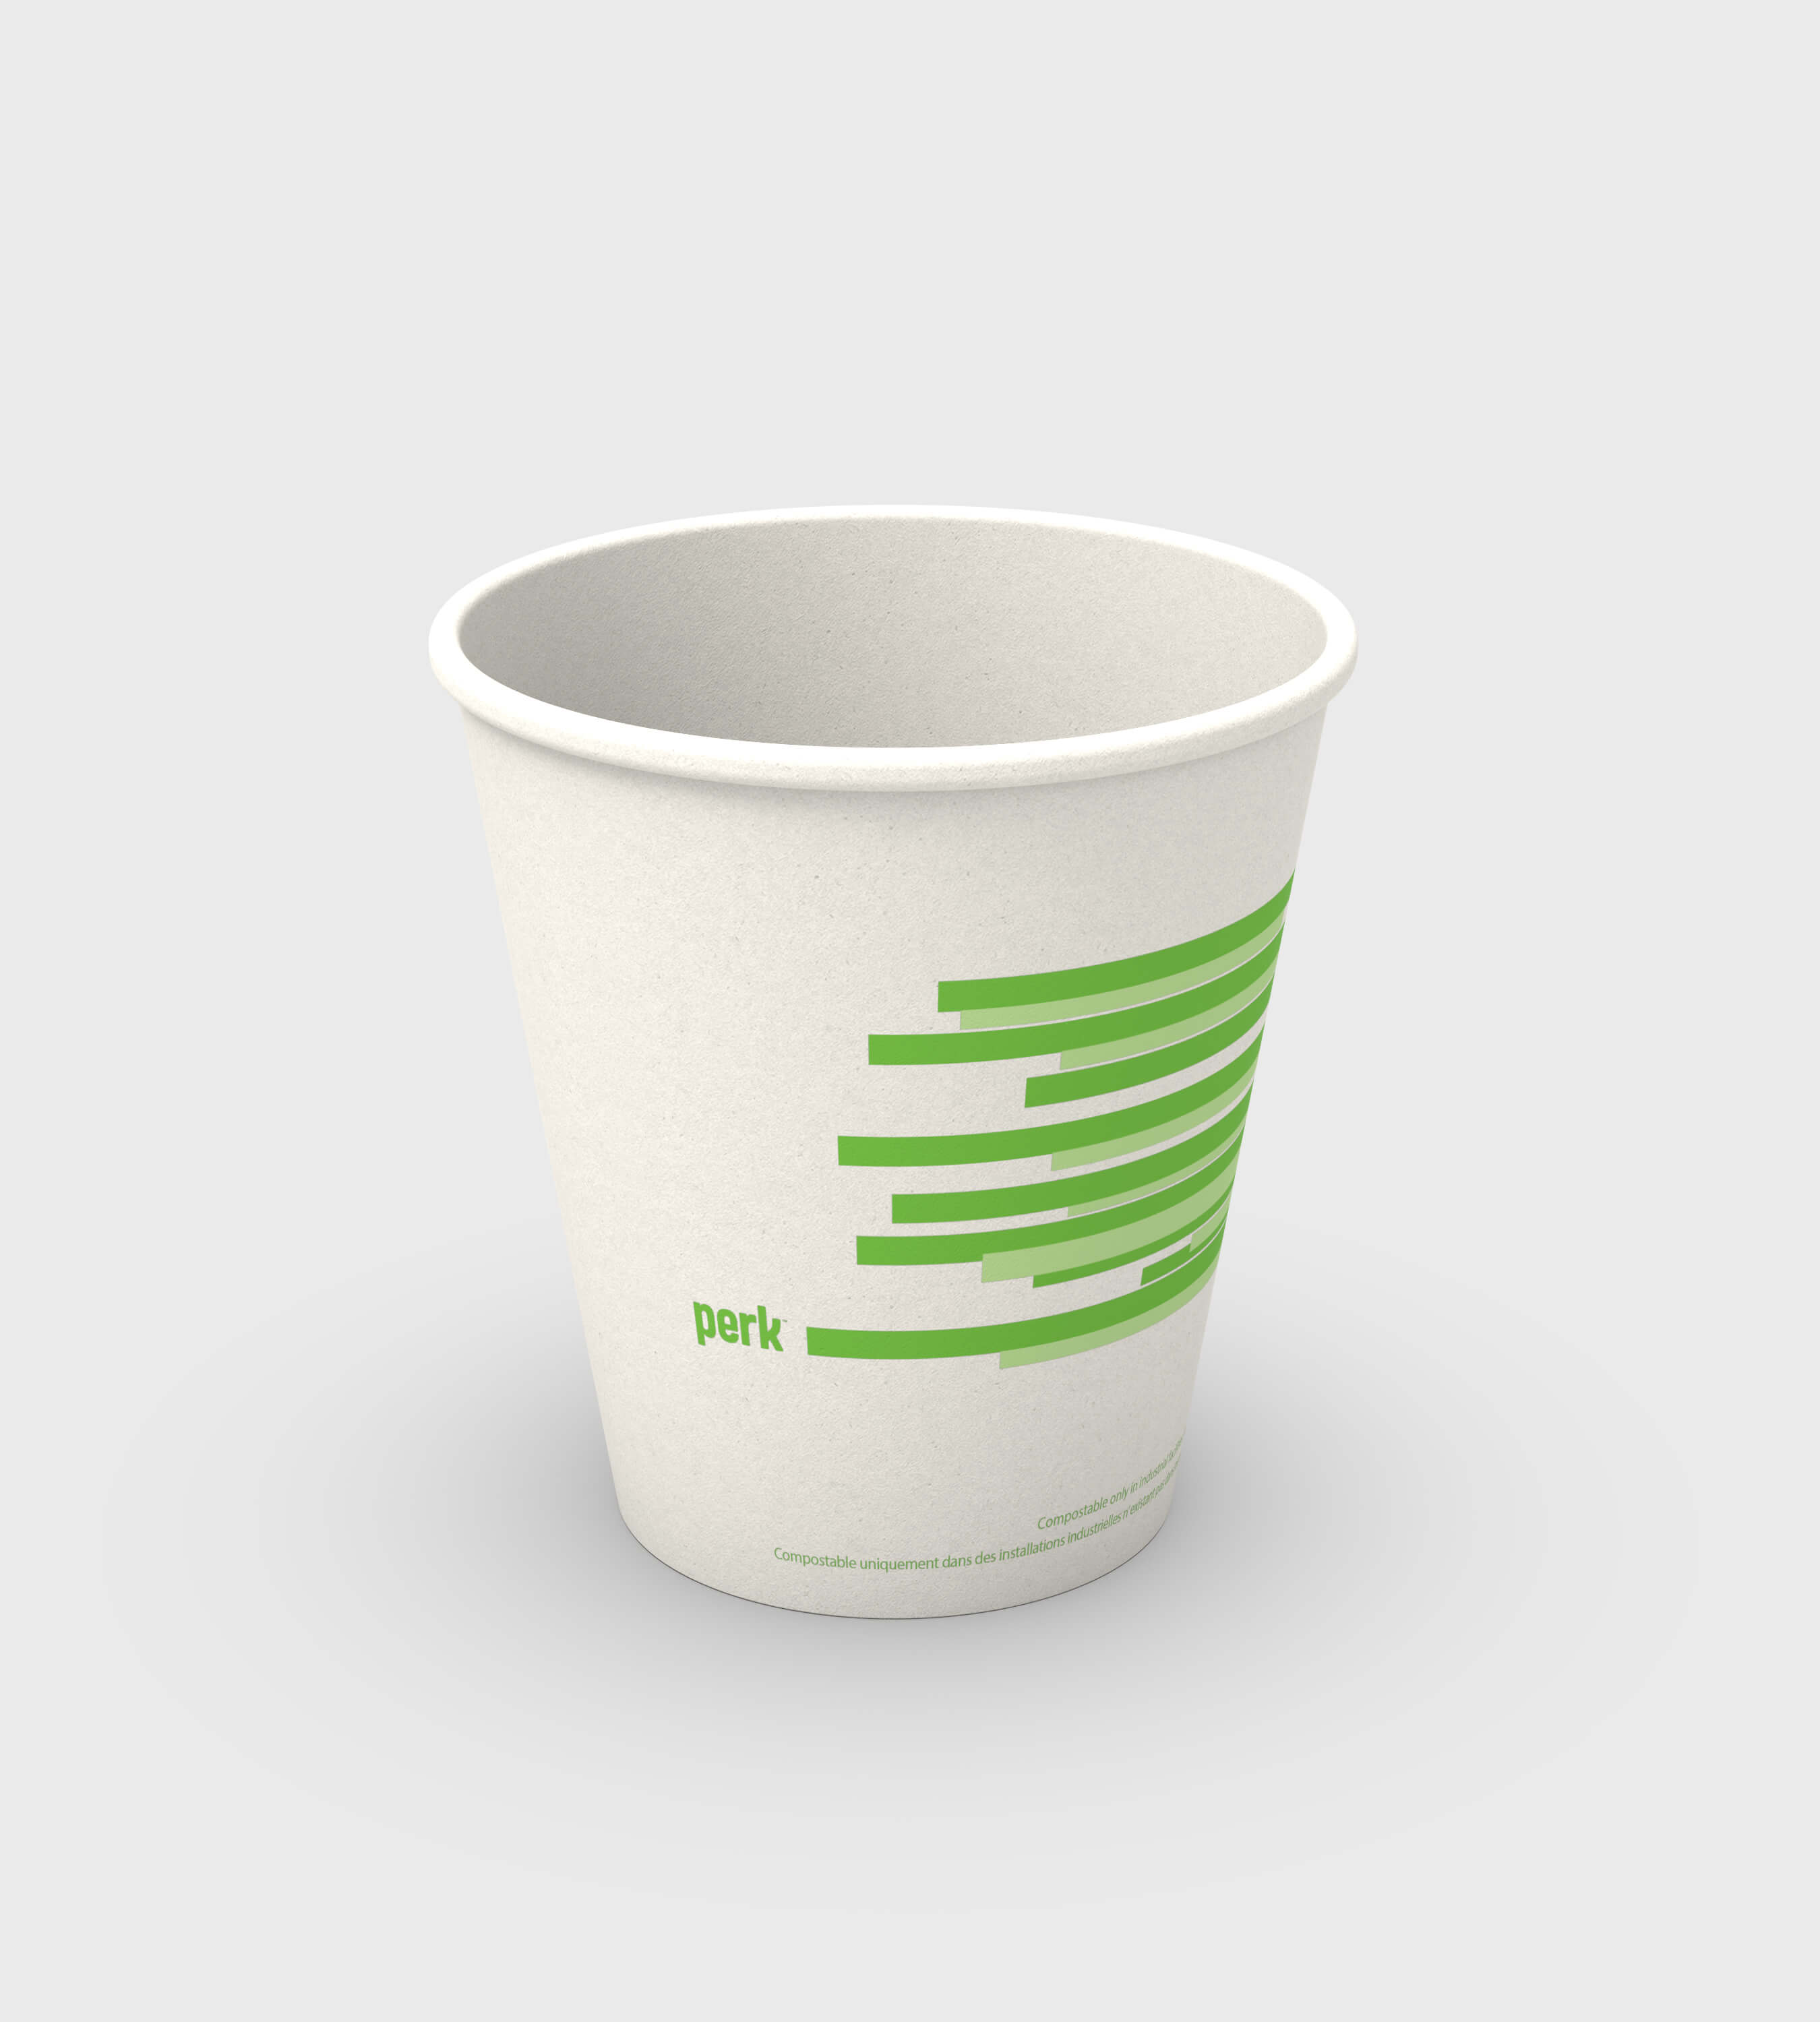 3D CAD Render by Sprout Studios of a paper cup